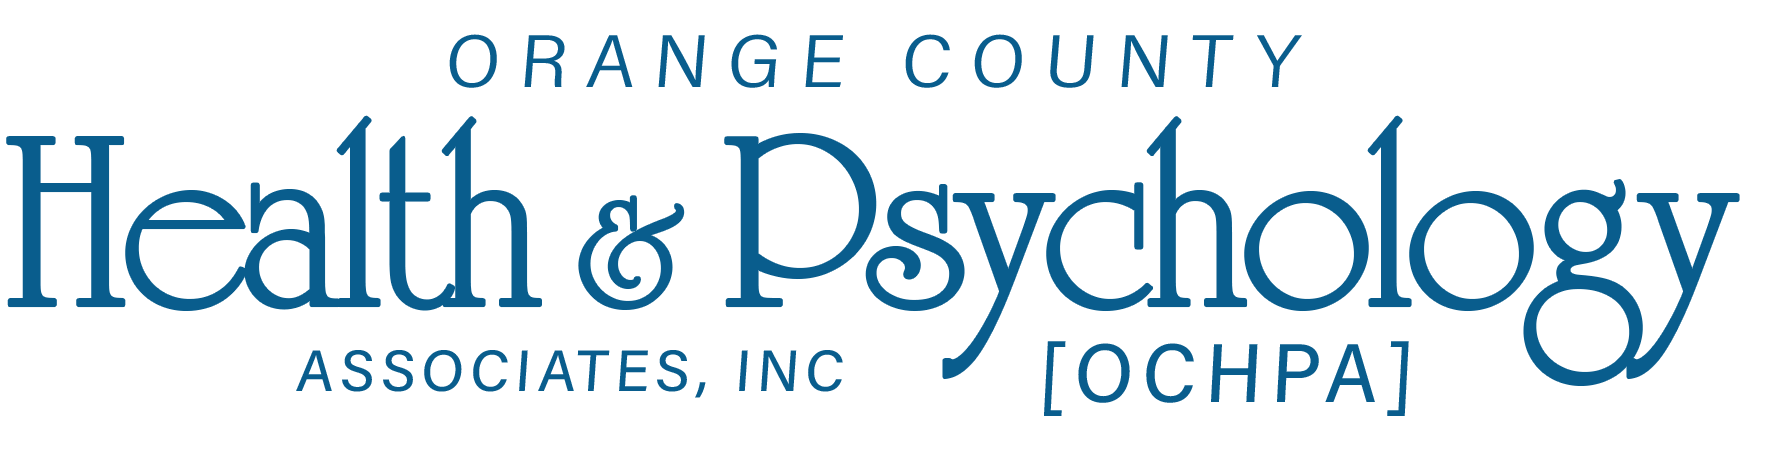 Orange County Health & Psychology Associates | OCHPA